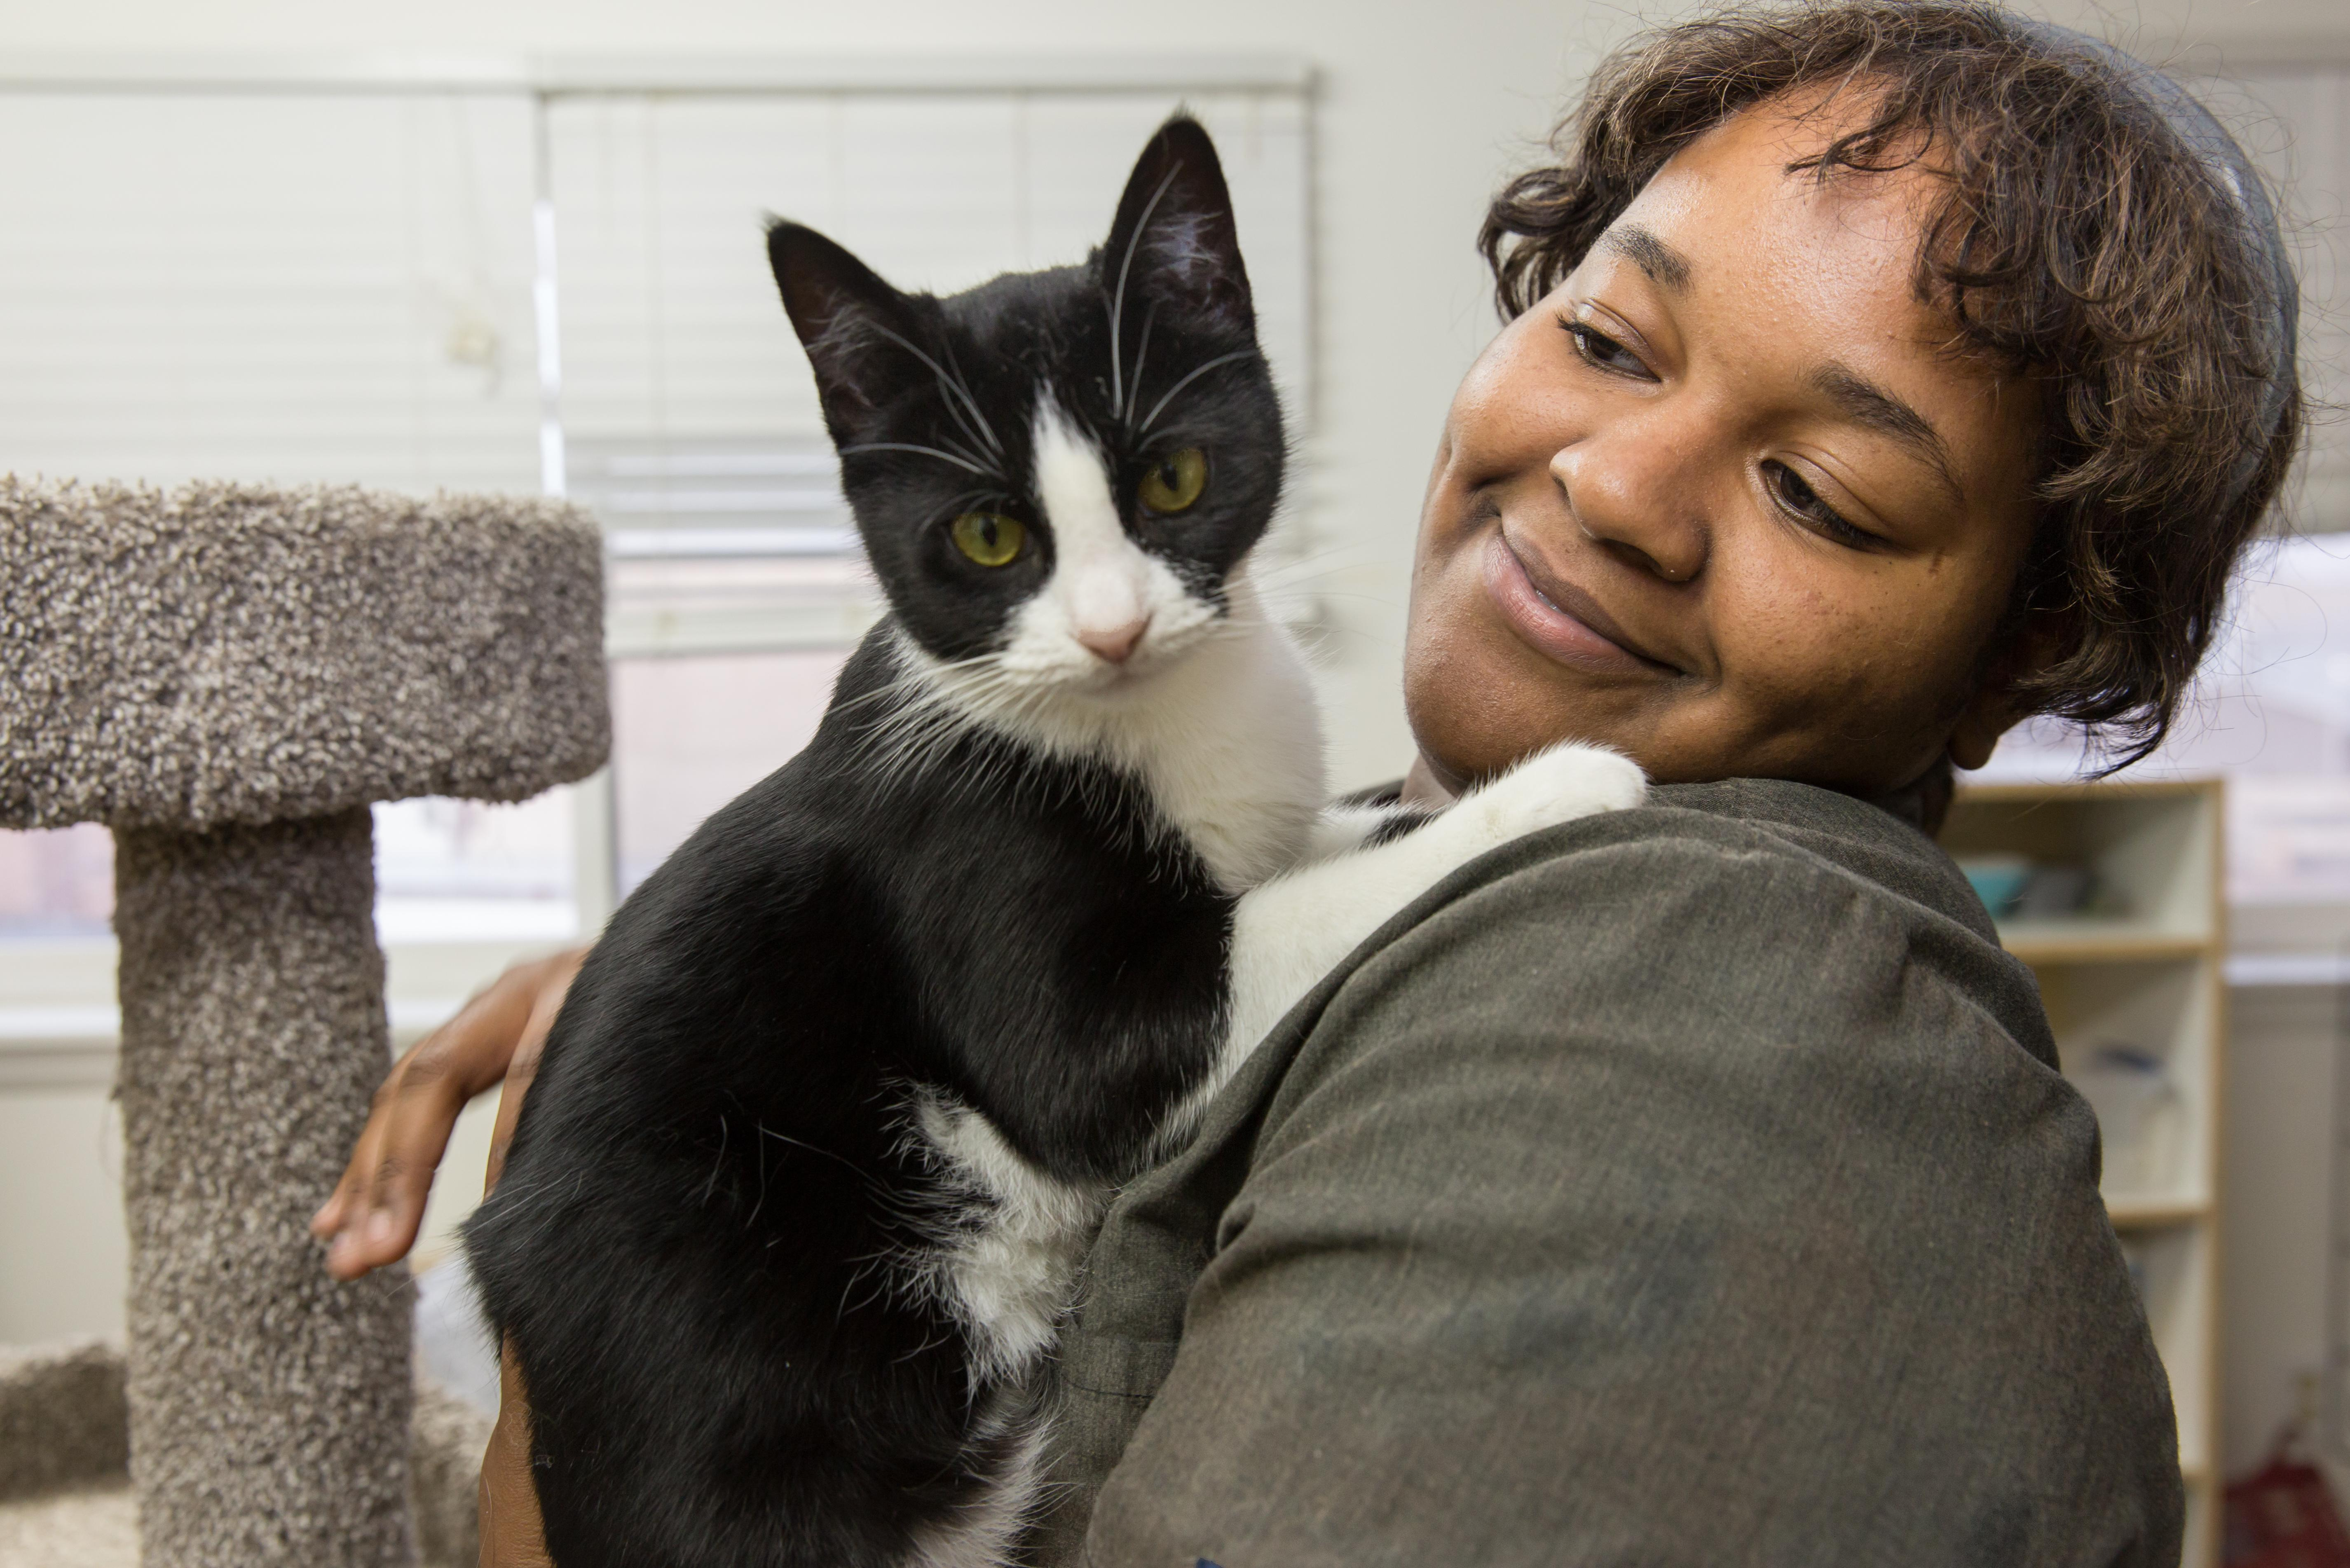 Linton with black and white cat